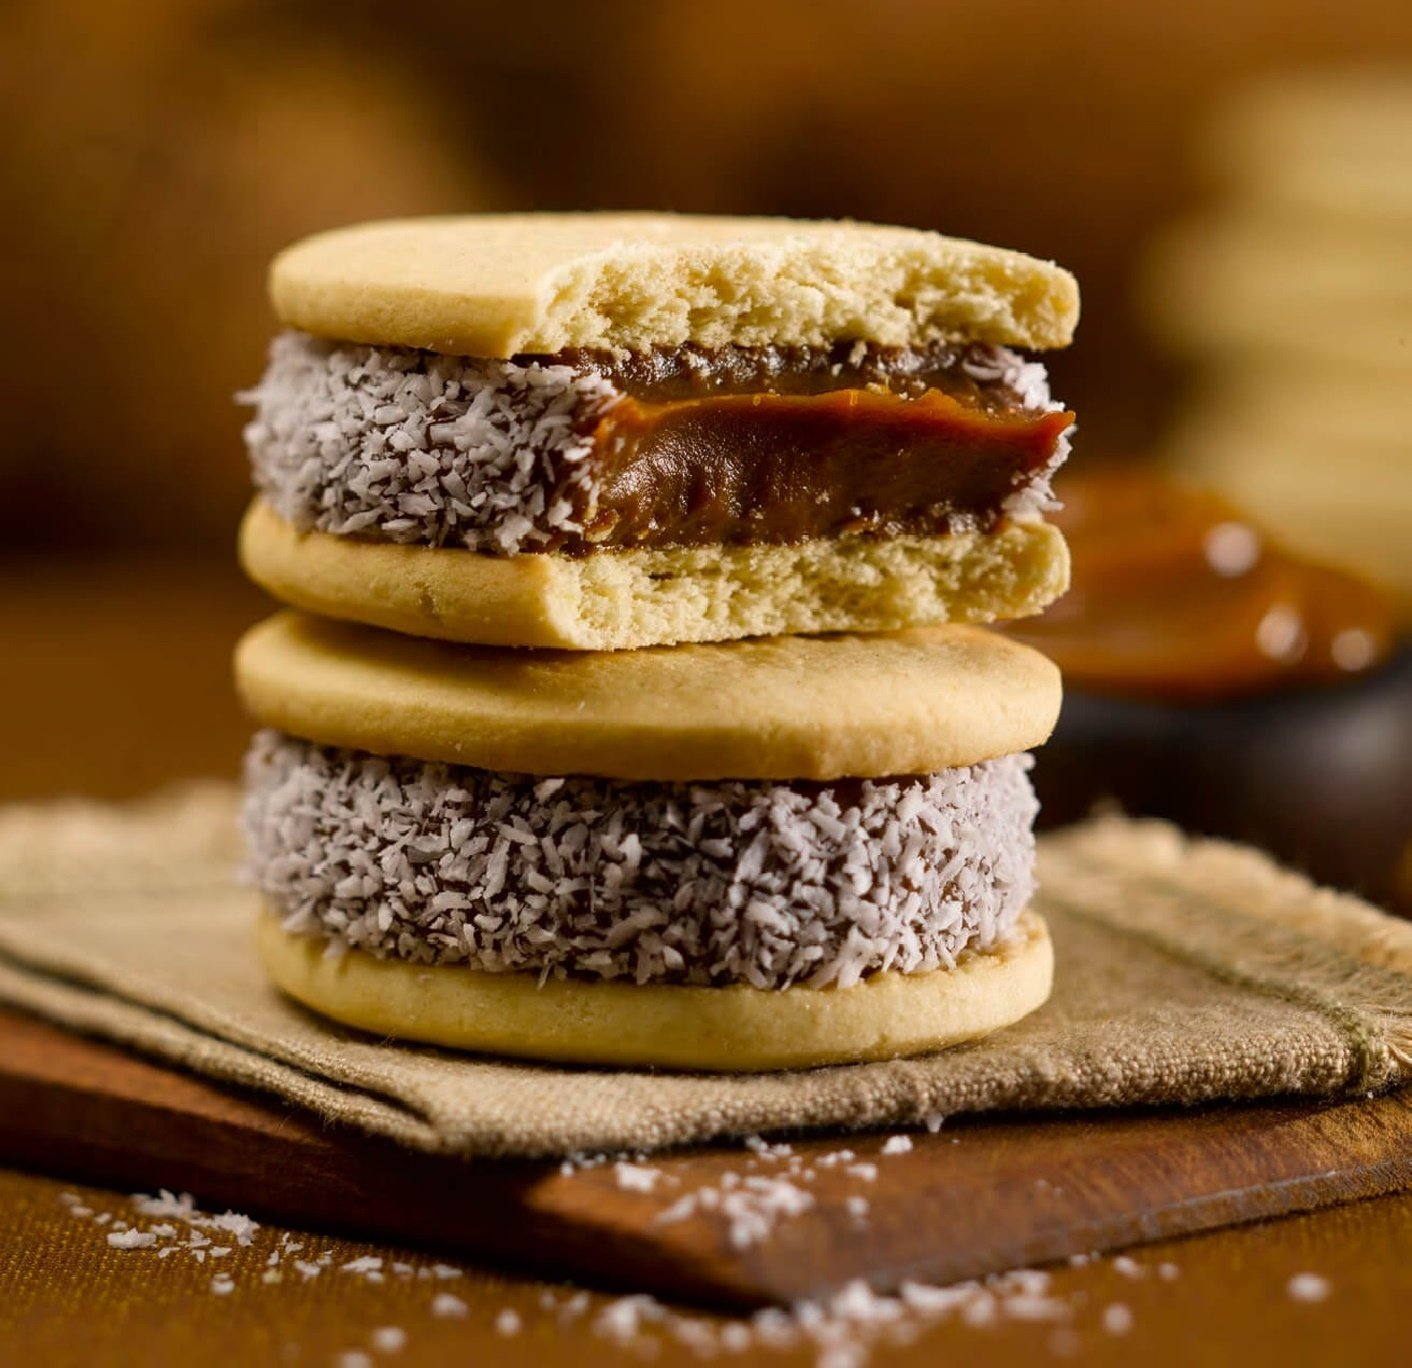 Cachafaz Alfajor Maizena - Cornstarch Sandwich Cookie filled with dulce de leche decorated with shredded coconut. 6 Units: 76 G